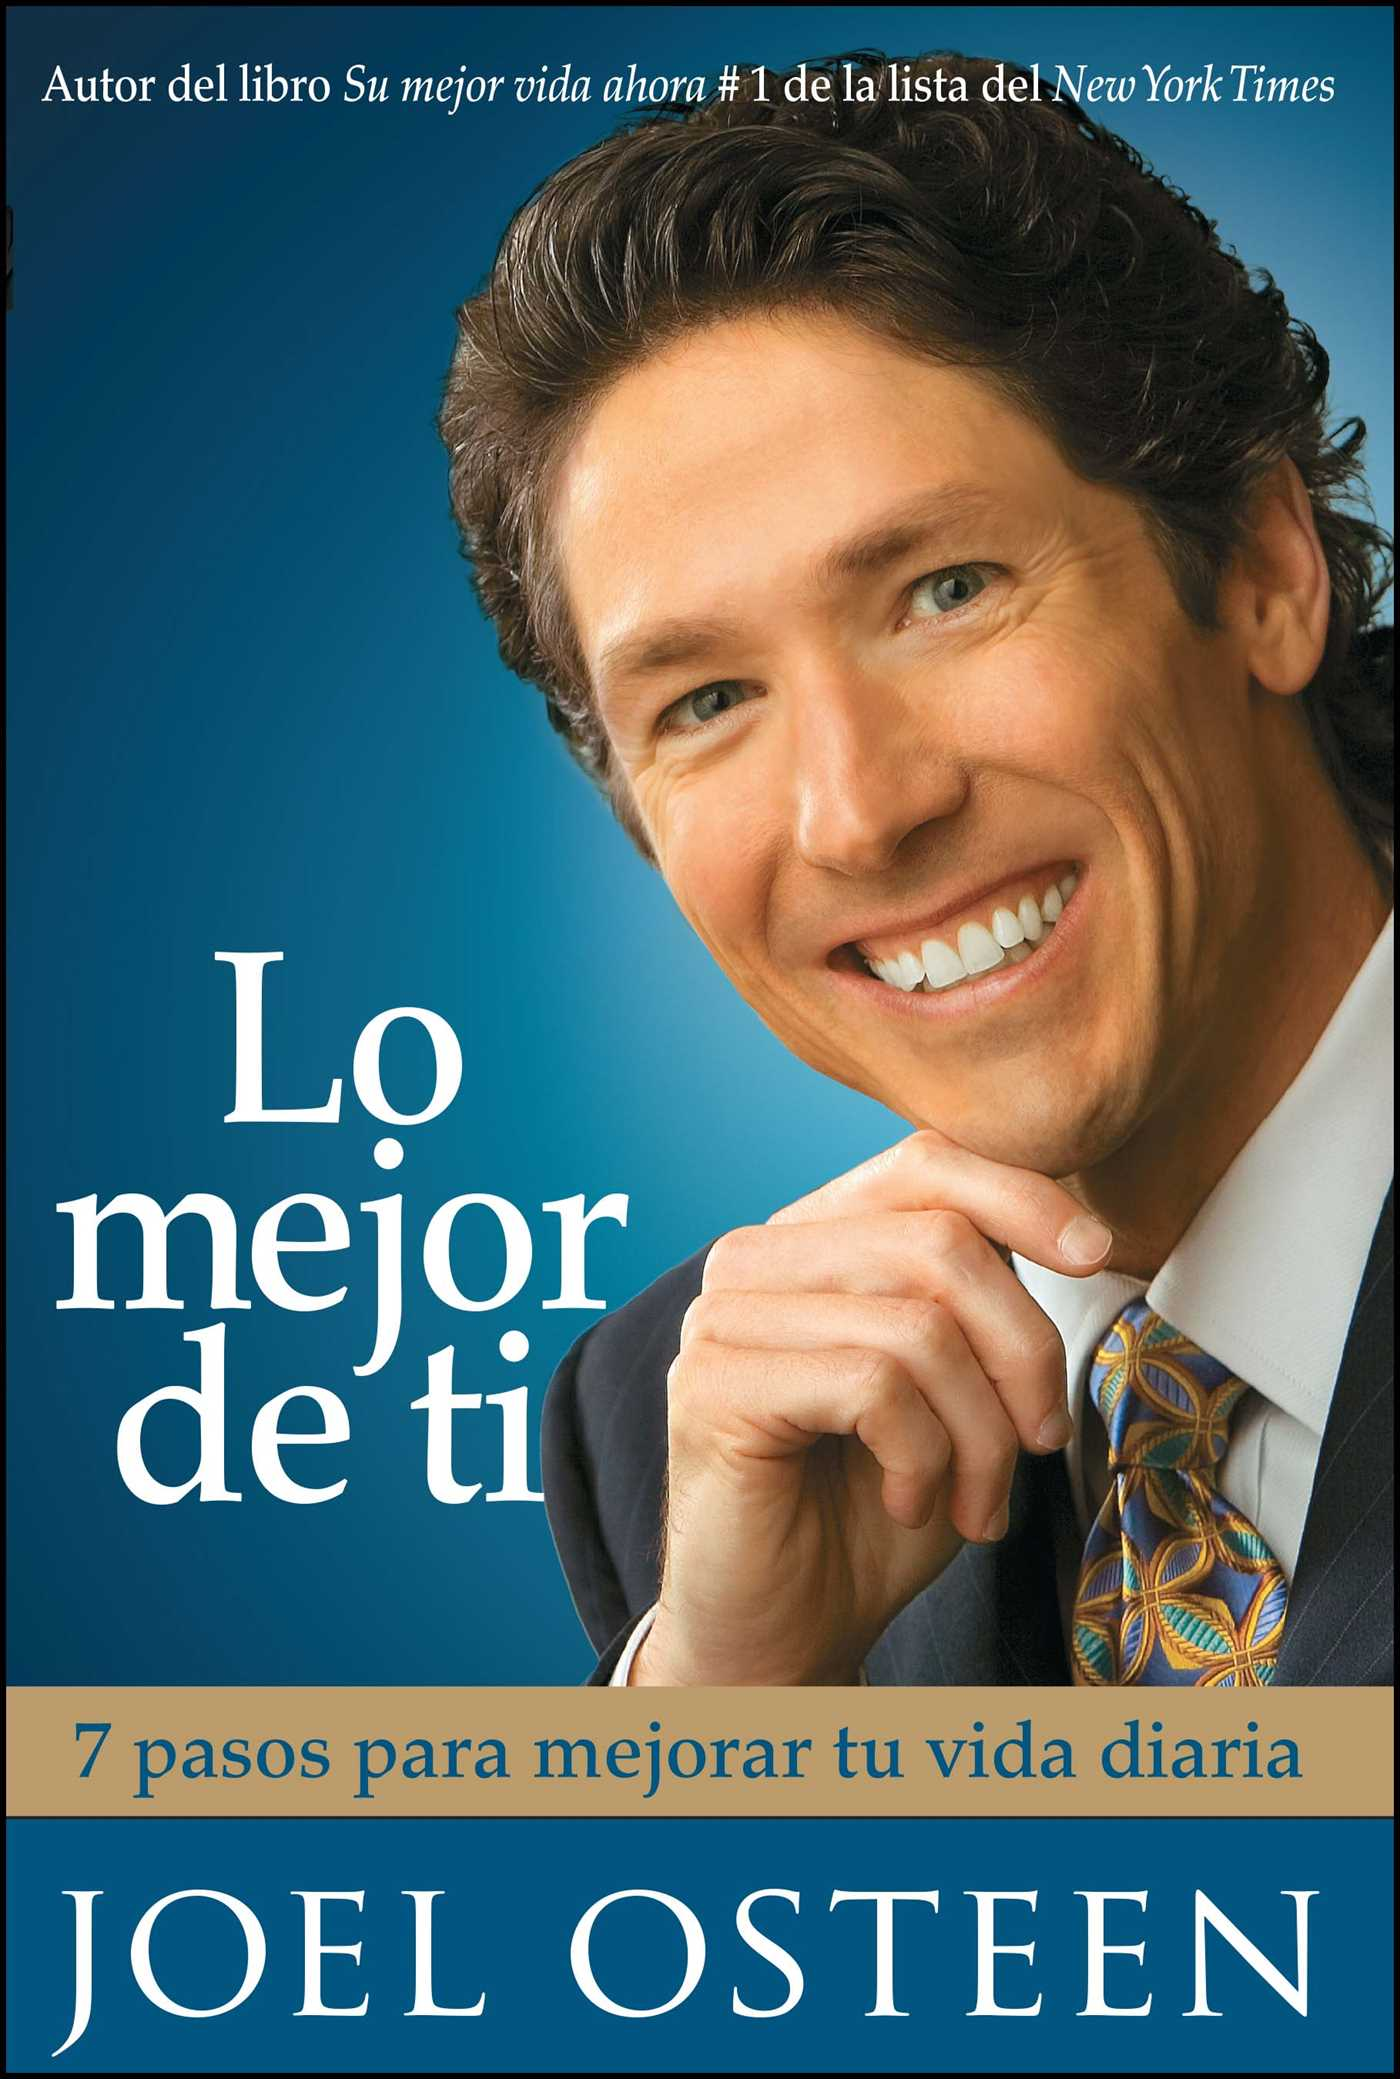 Lo-mejor-de-ti-become-a-better-you-spanish-editi-9781451635935_hr